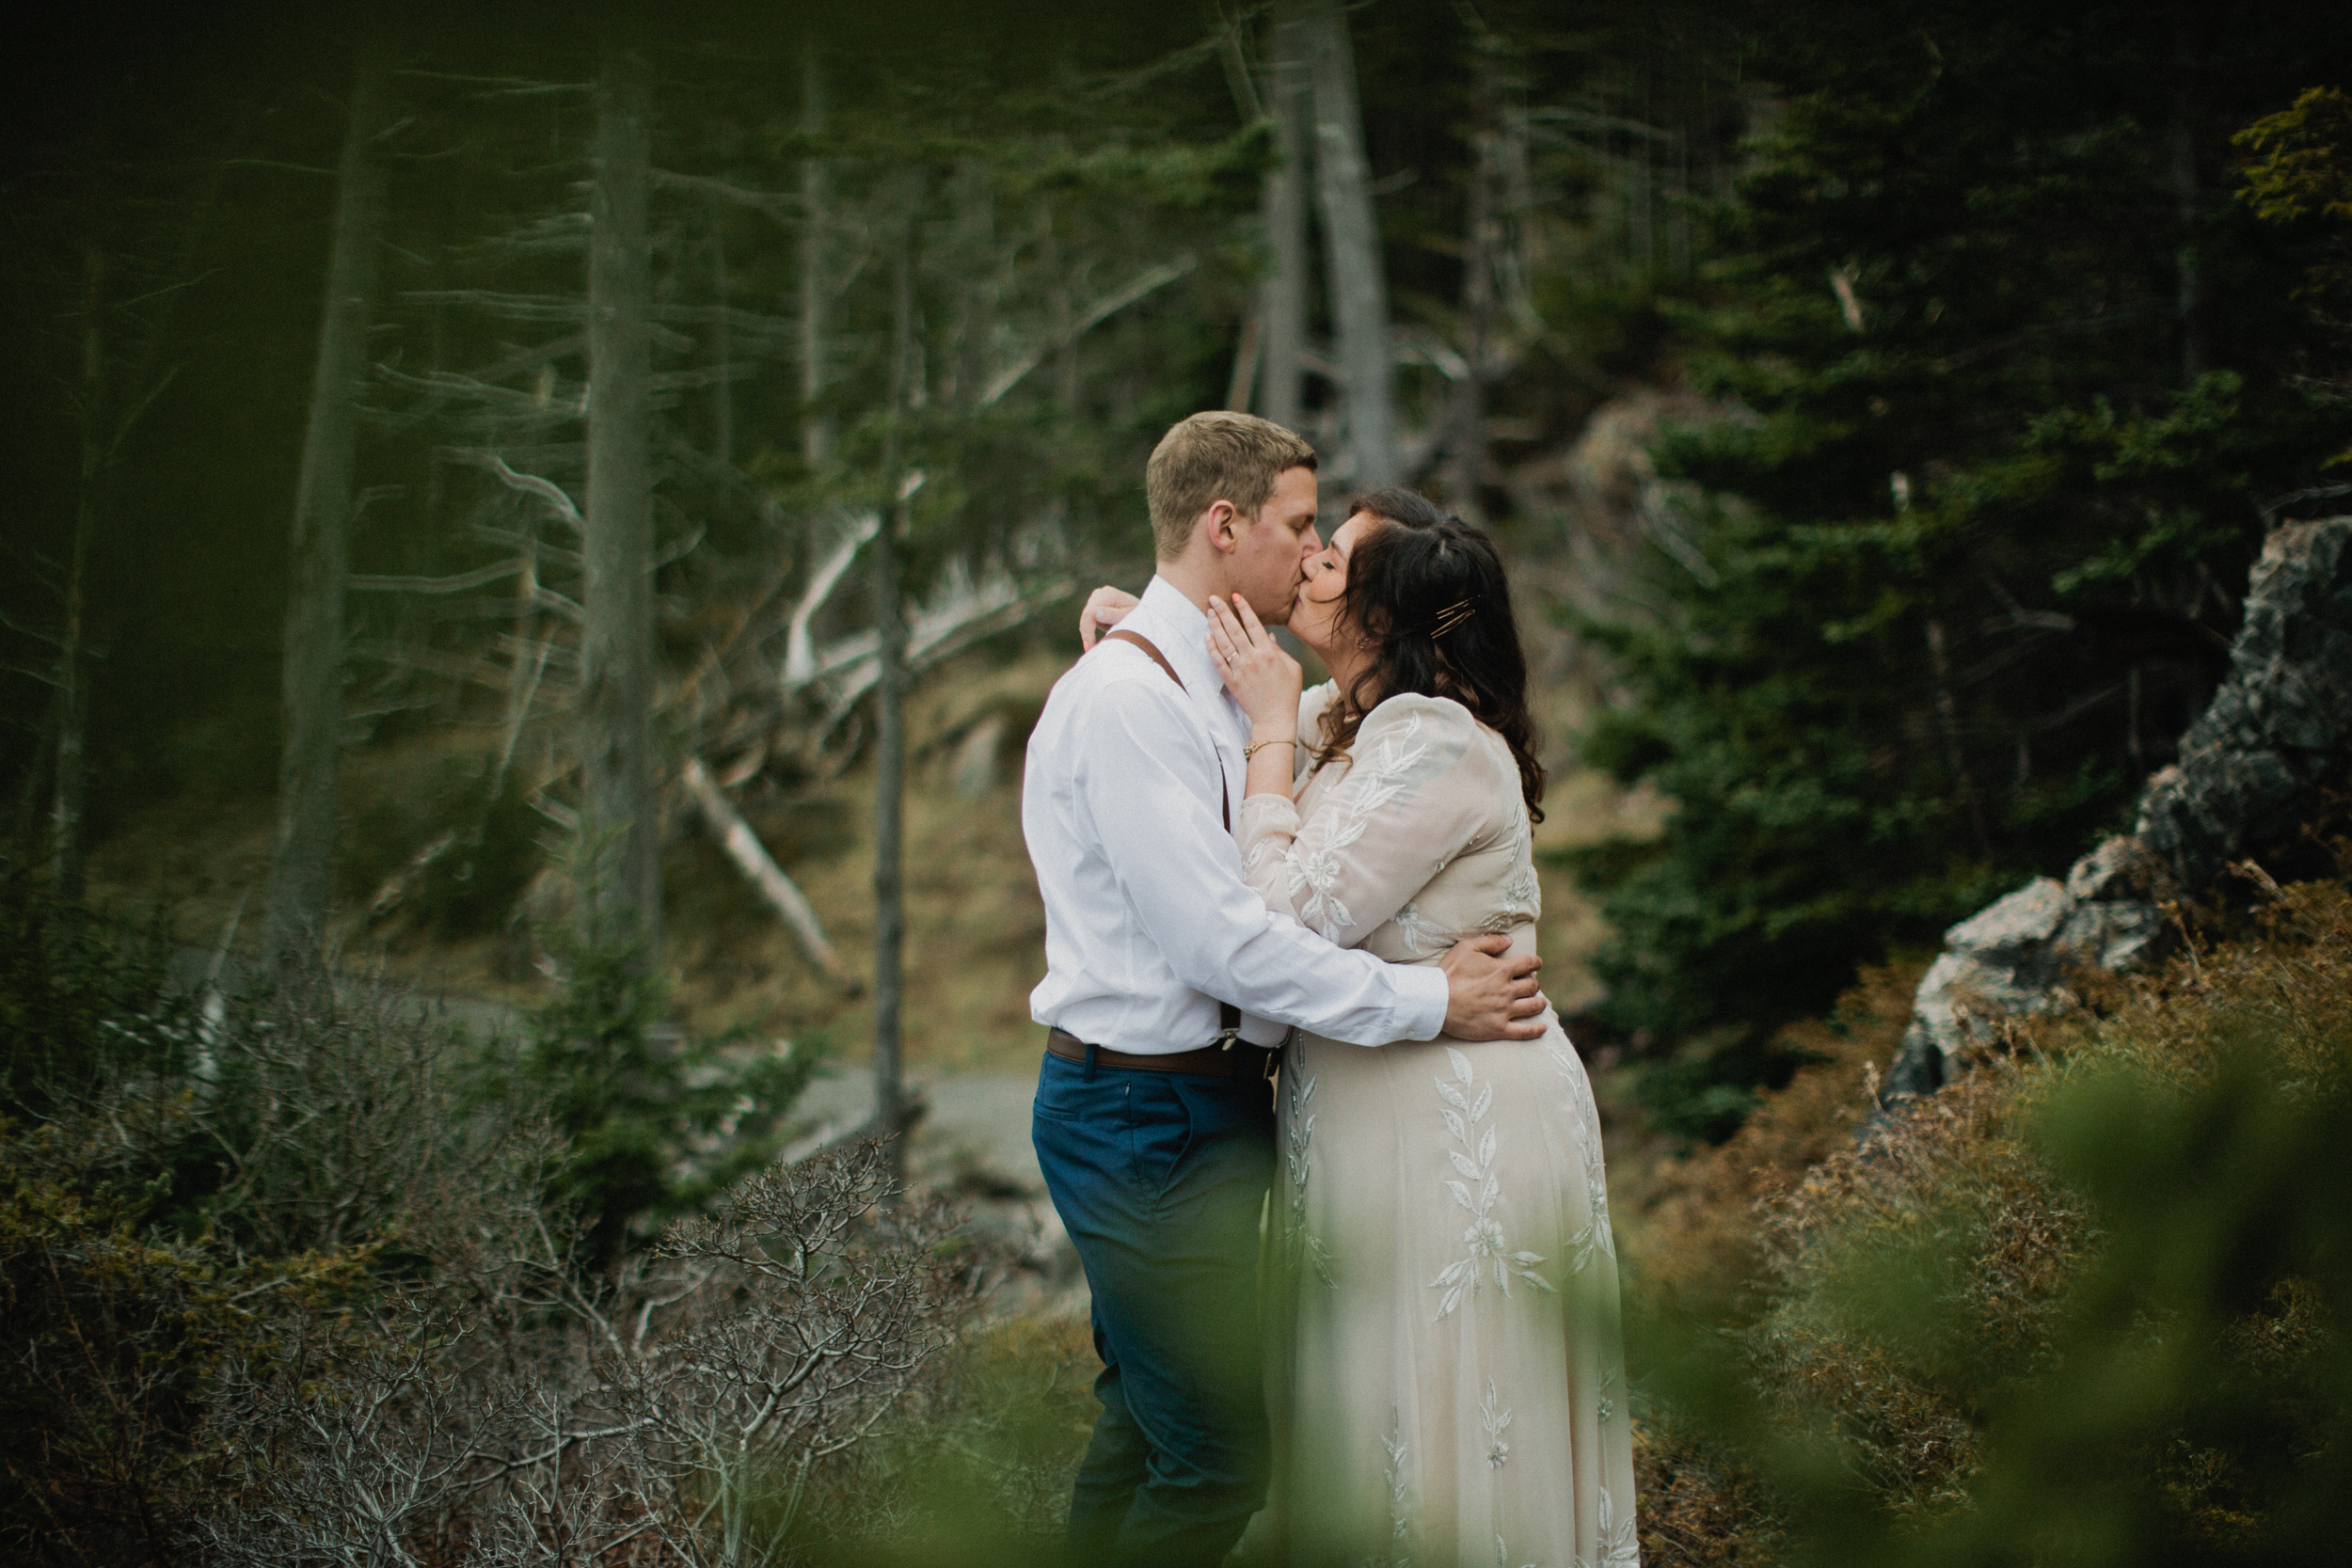 Acadia-Elopement-Photos-414.jpg